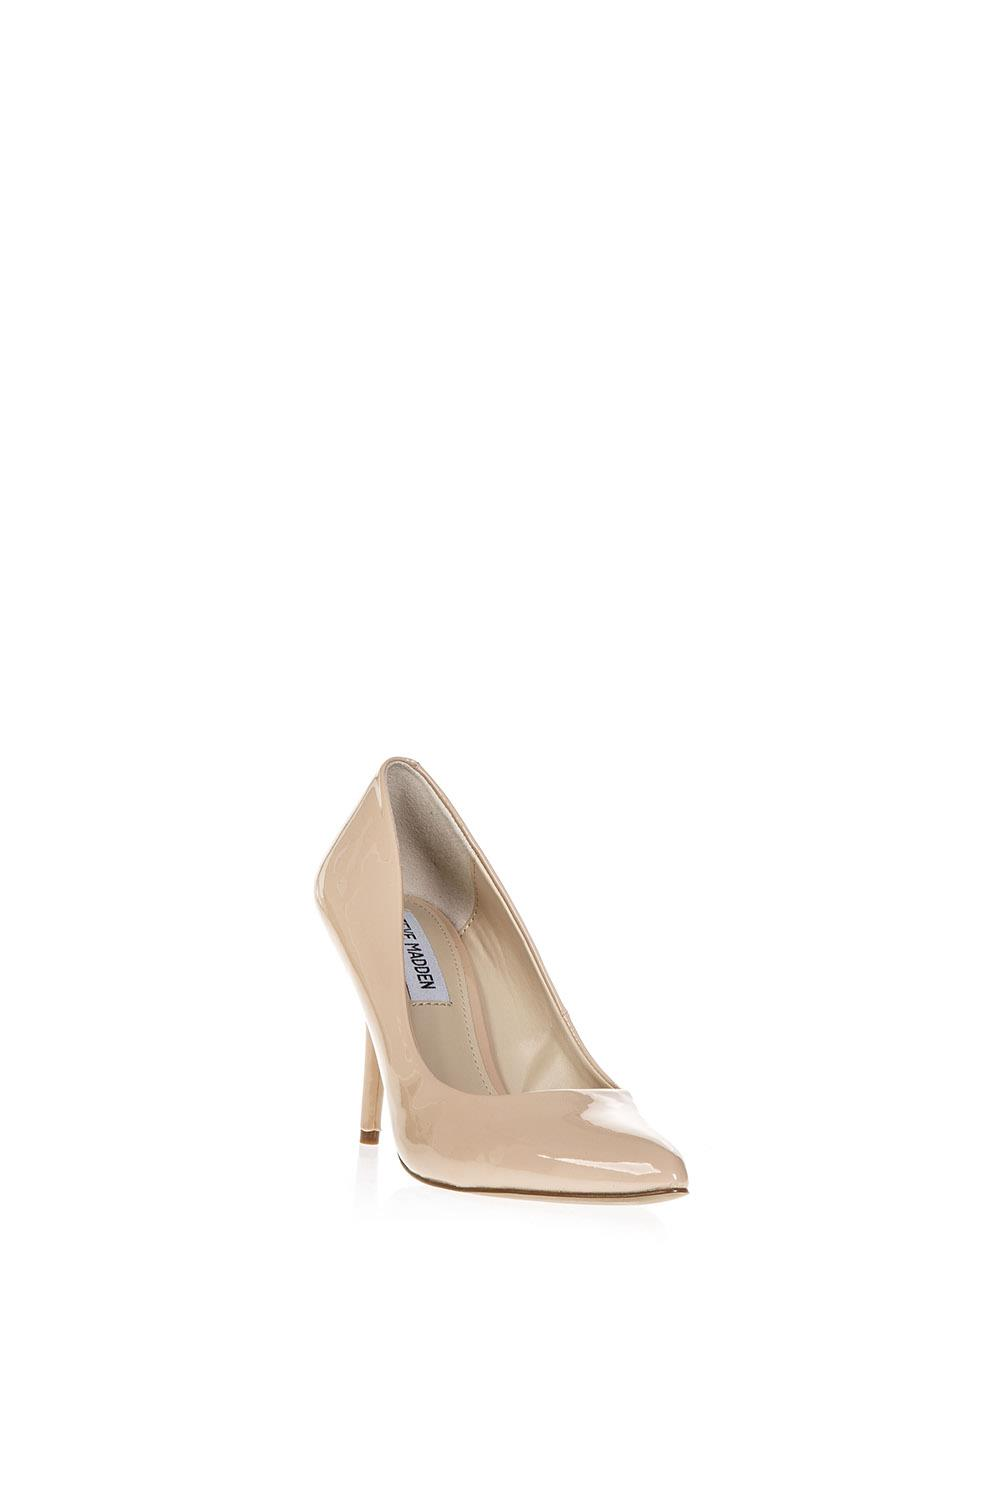 1905cb787 FAUX LEATHER NUDE PUMPS SS 2018 - STEVE MADDEN - Boutique Galiano